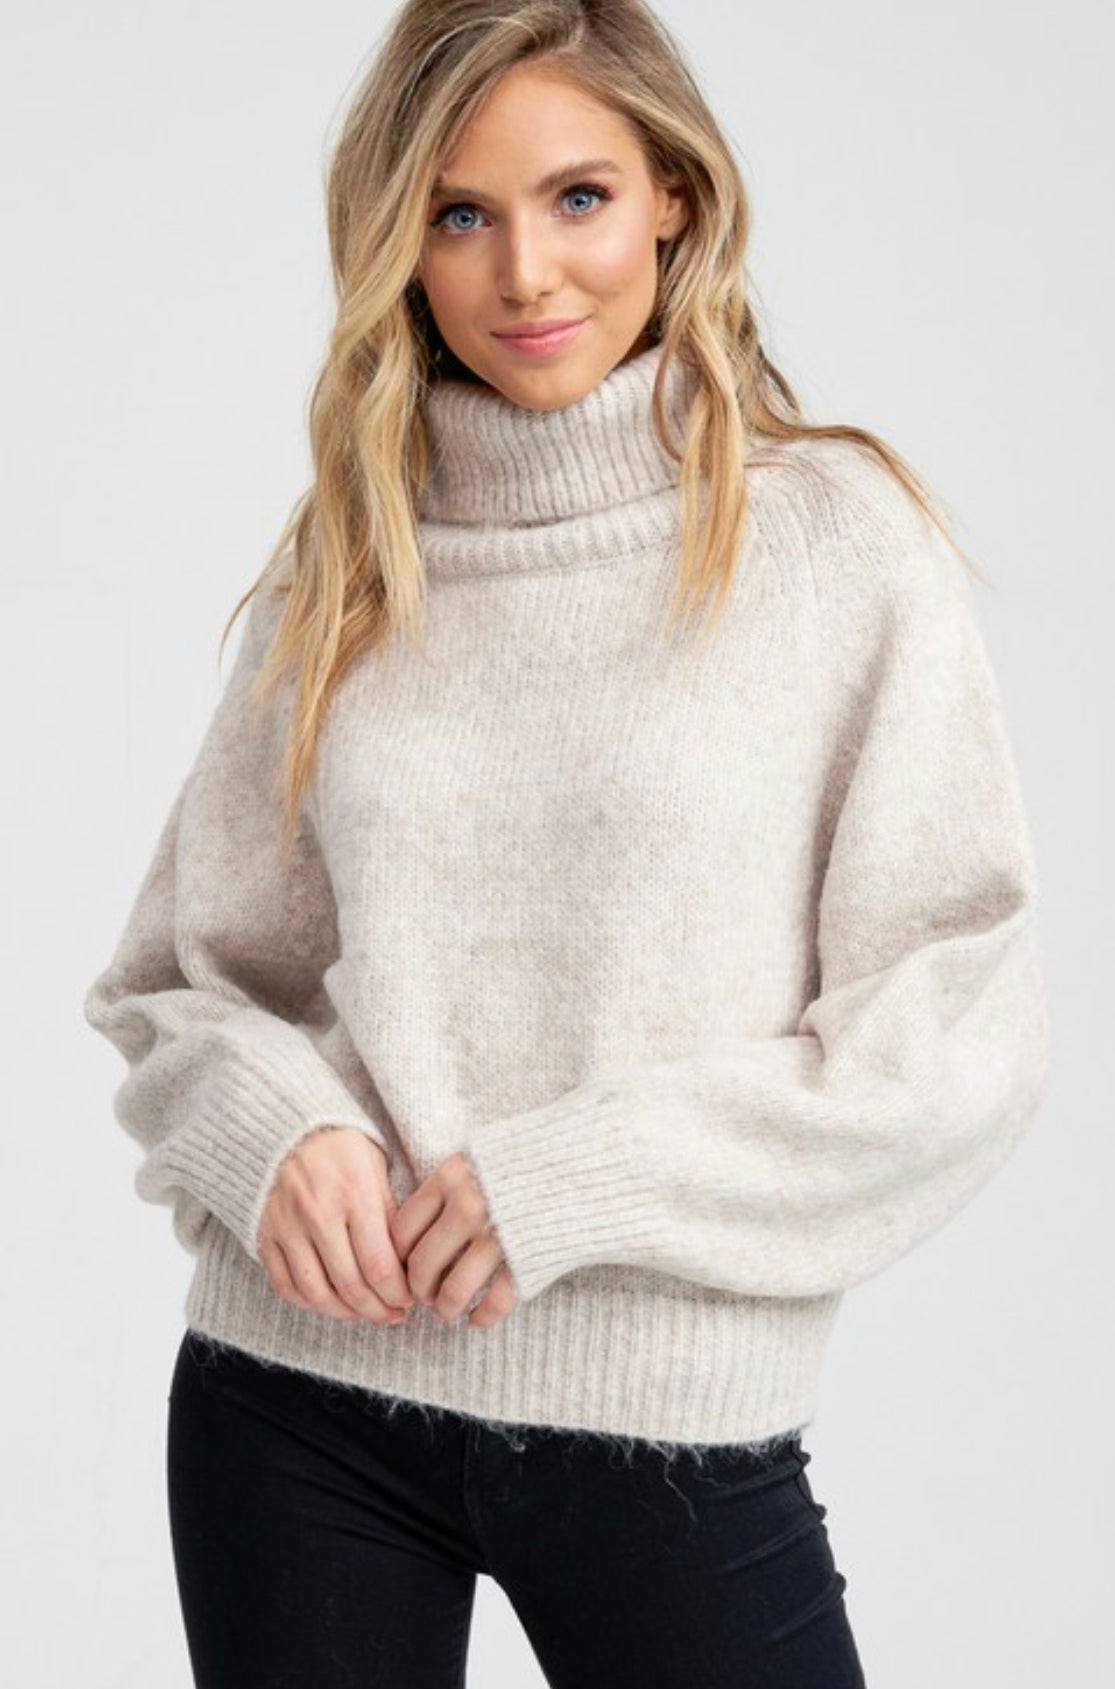 Chunky dolman sleeve turtleneck sweater - oatmeal